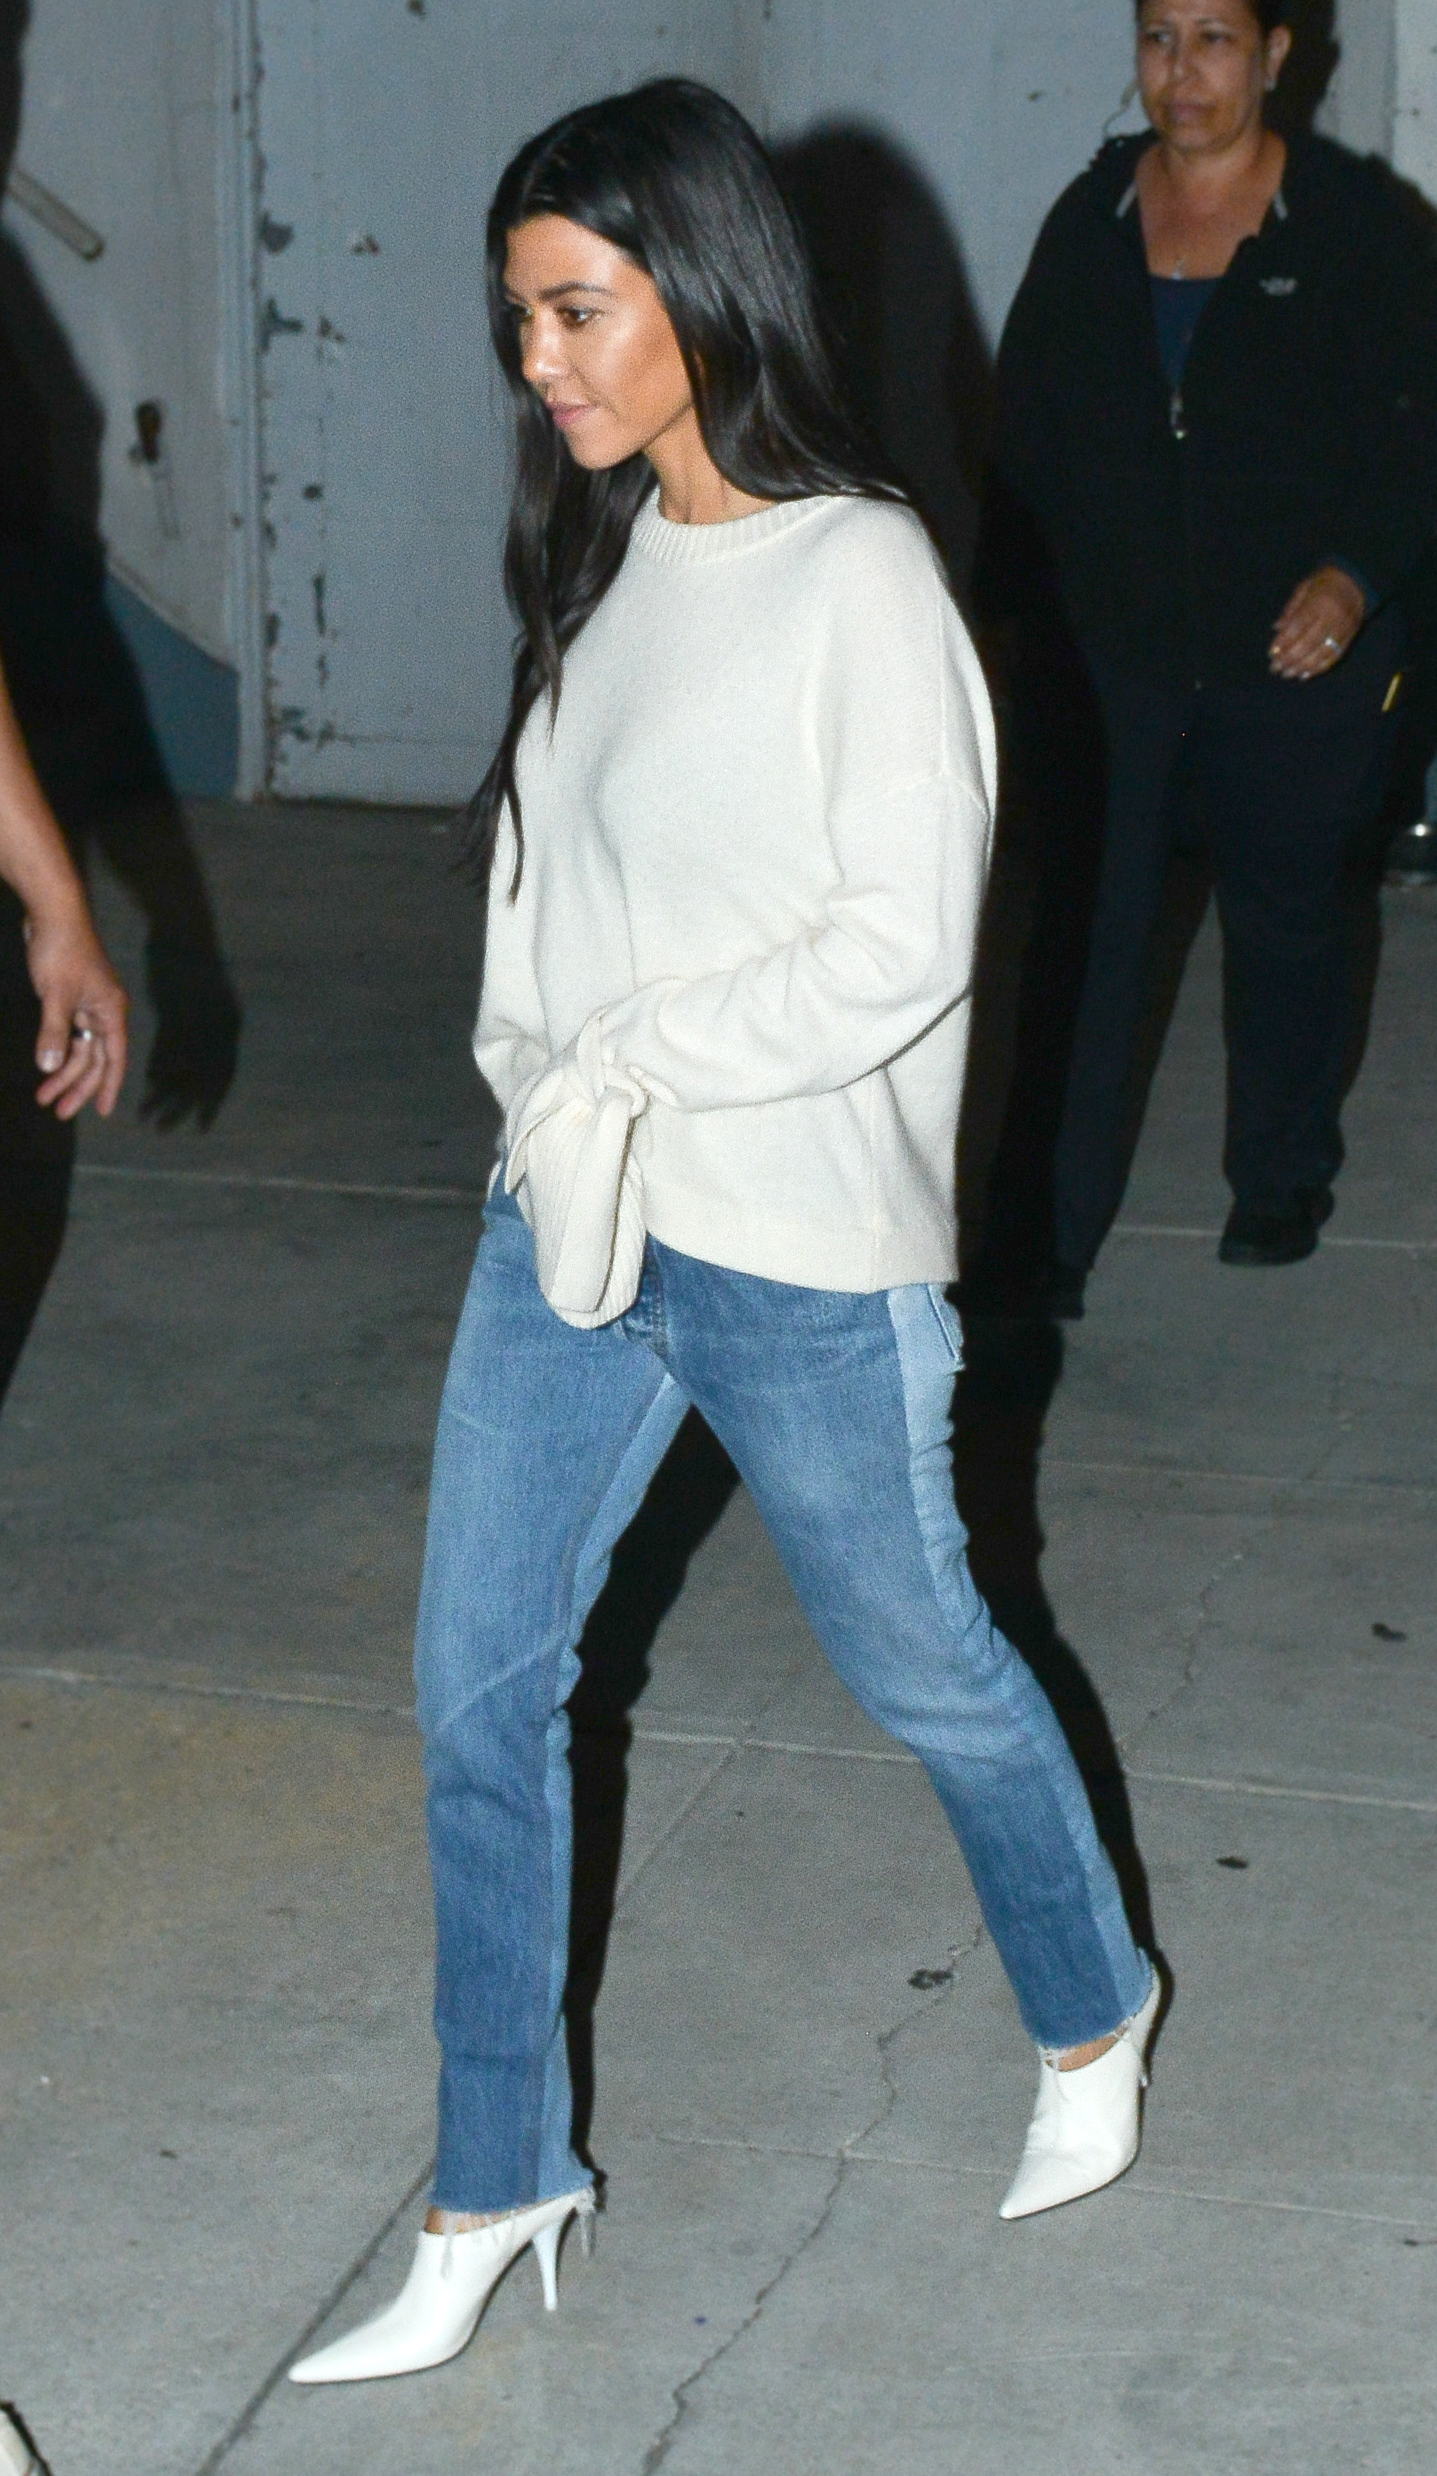 Kourtney Kardashian went to mass in an outfit we want to wear to ...